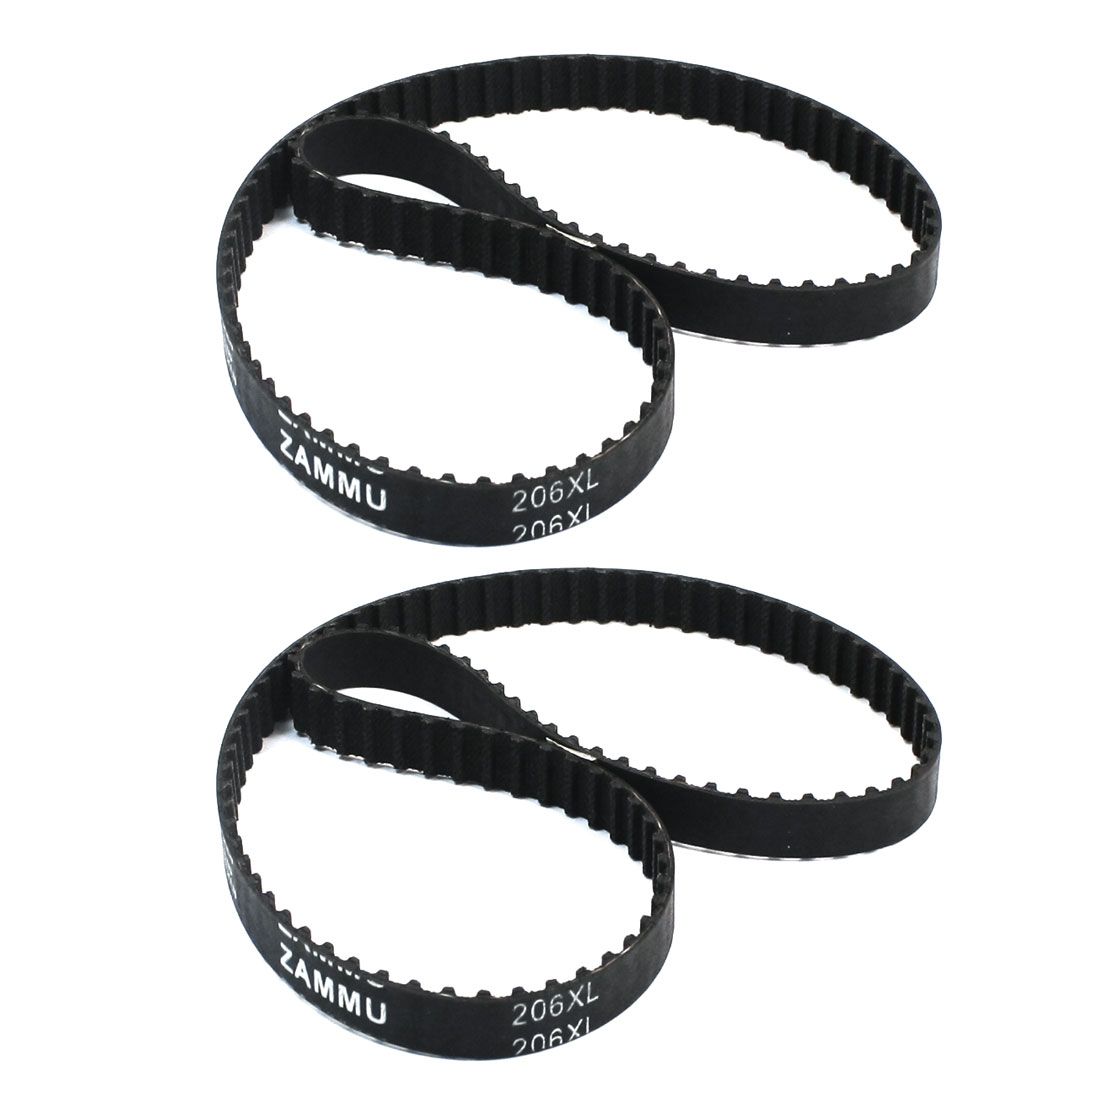 "206XL 103 Teeth 103T 10mm Width 5.08mm Pitch Single Side Black Rubber Cogged Industrial Timing Belt 20.6"" Girth 2Pcs"